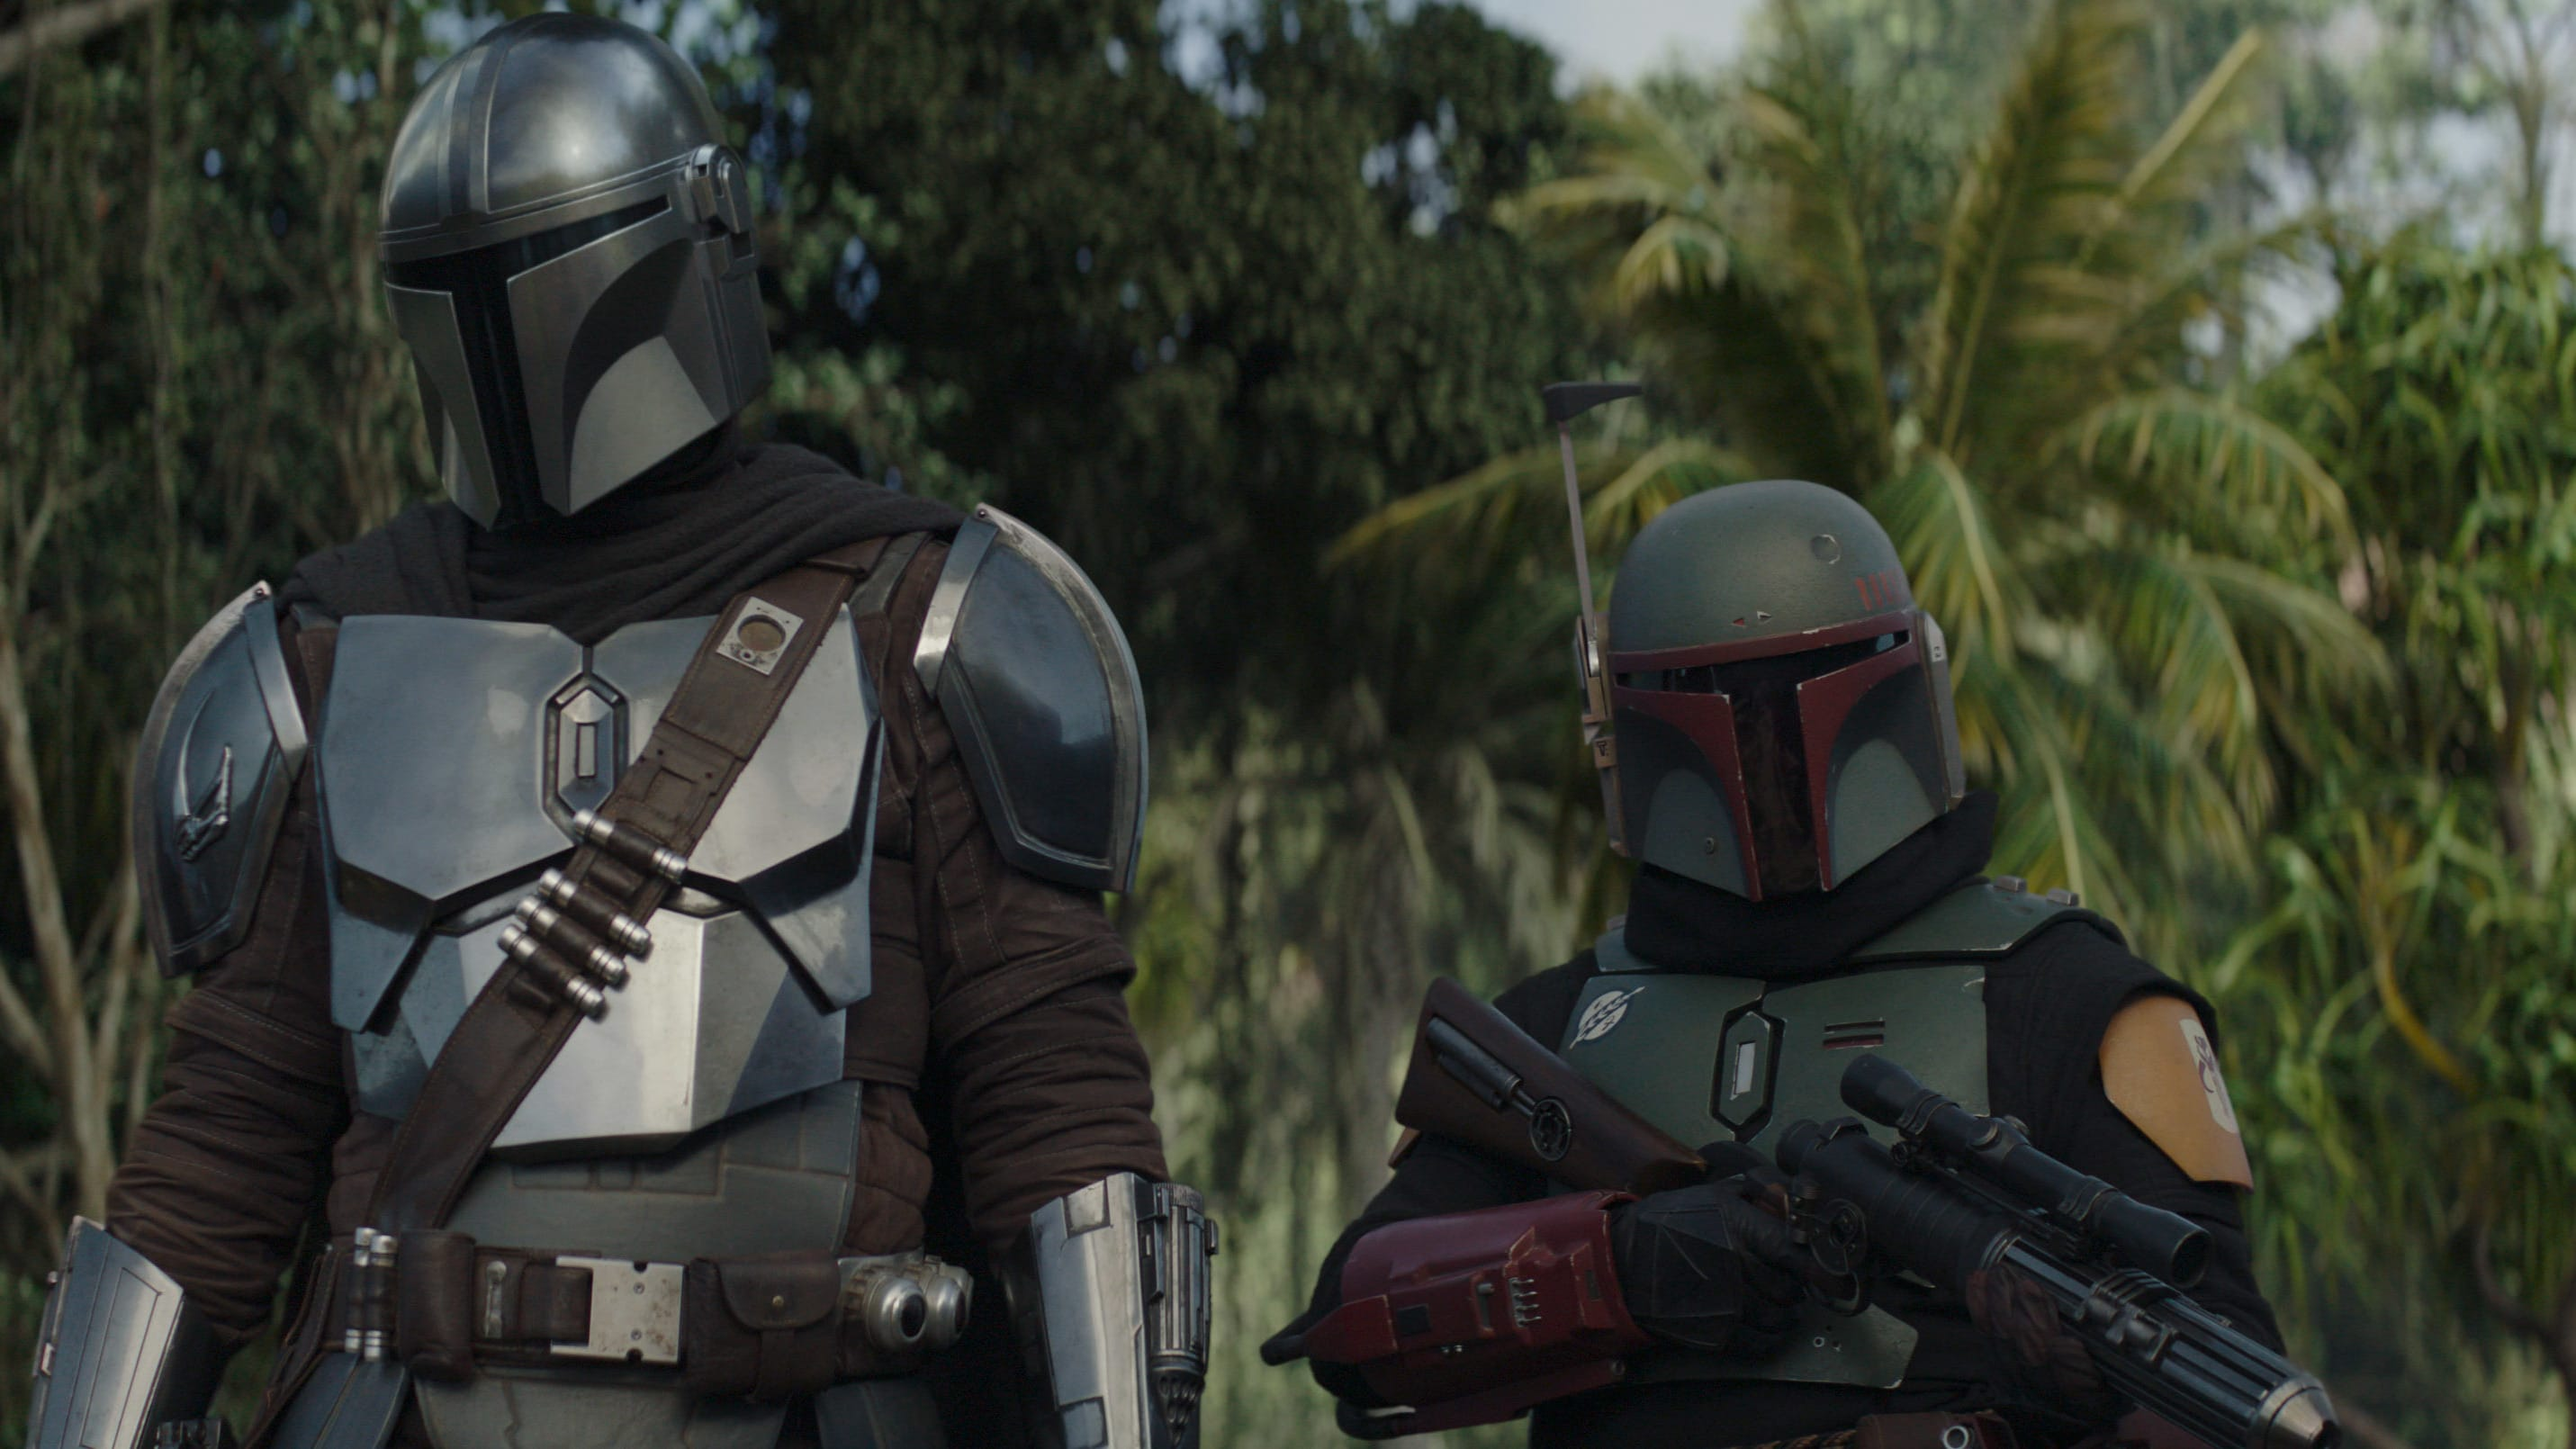 (L-R): The Mandalorian (Pedro Pascal) and Boba Fett (Temuera Morrison) in Lucasfilm's THE MANDALORIAN, season two, exclusively on Disney+. © 2020 Lucasfilm Ltd. & ™. All Rights Reserved.